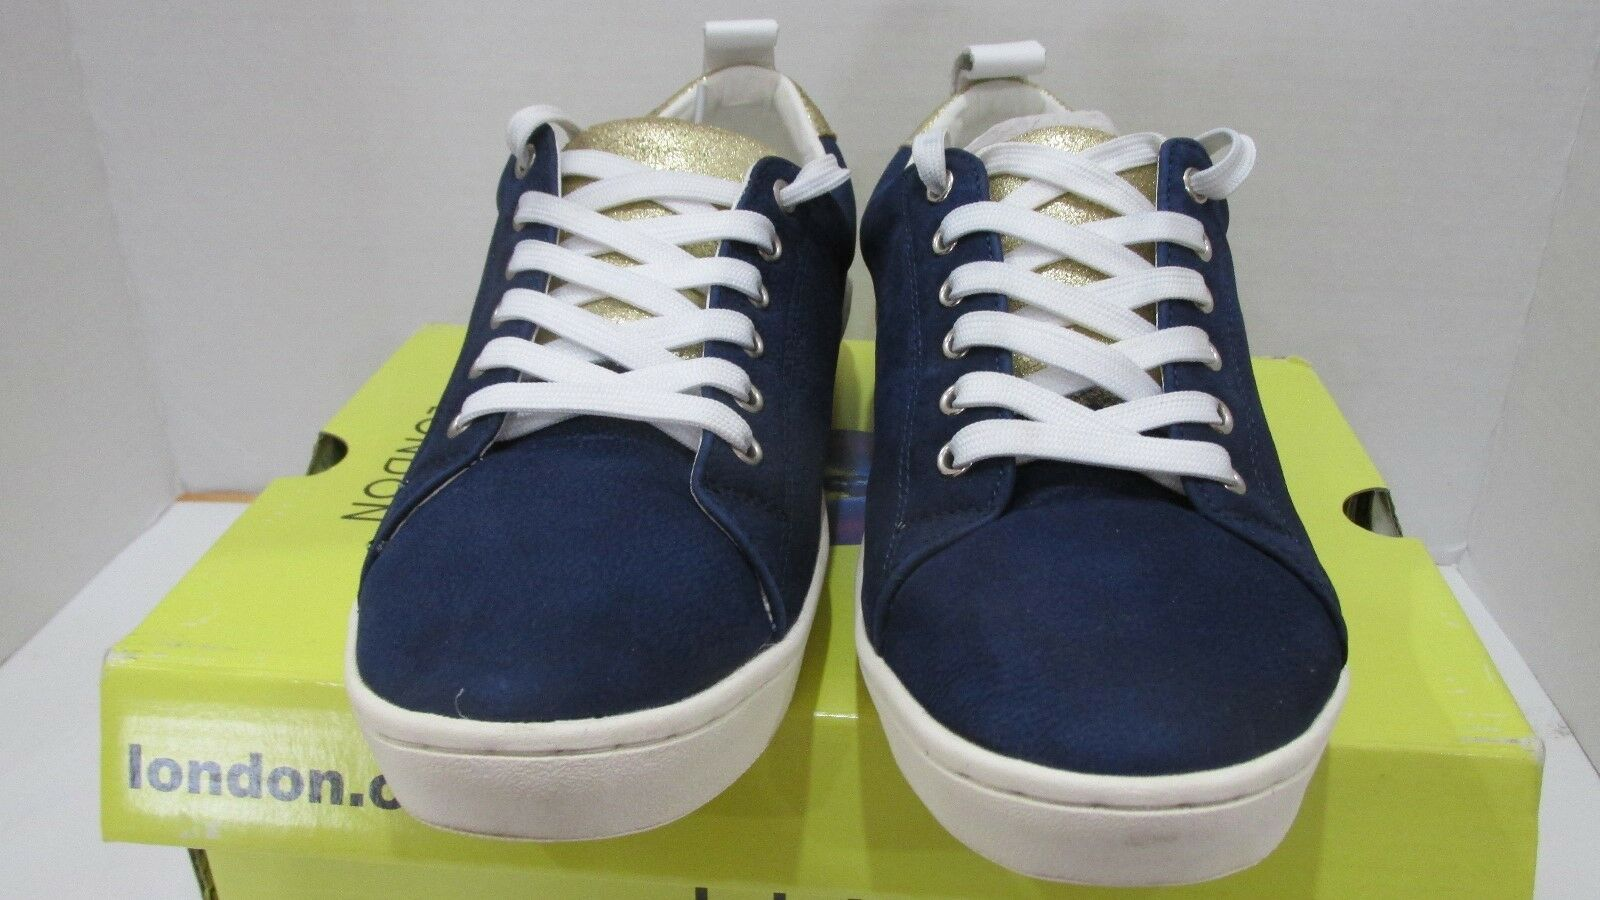 Fly London Leder 40 Lace Up Sneakers -Maco- Blau EU 40 Leder US 9-9.5 78bb25